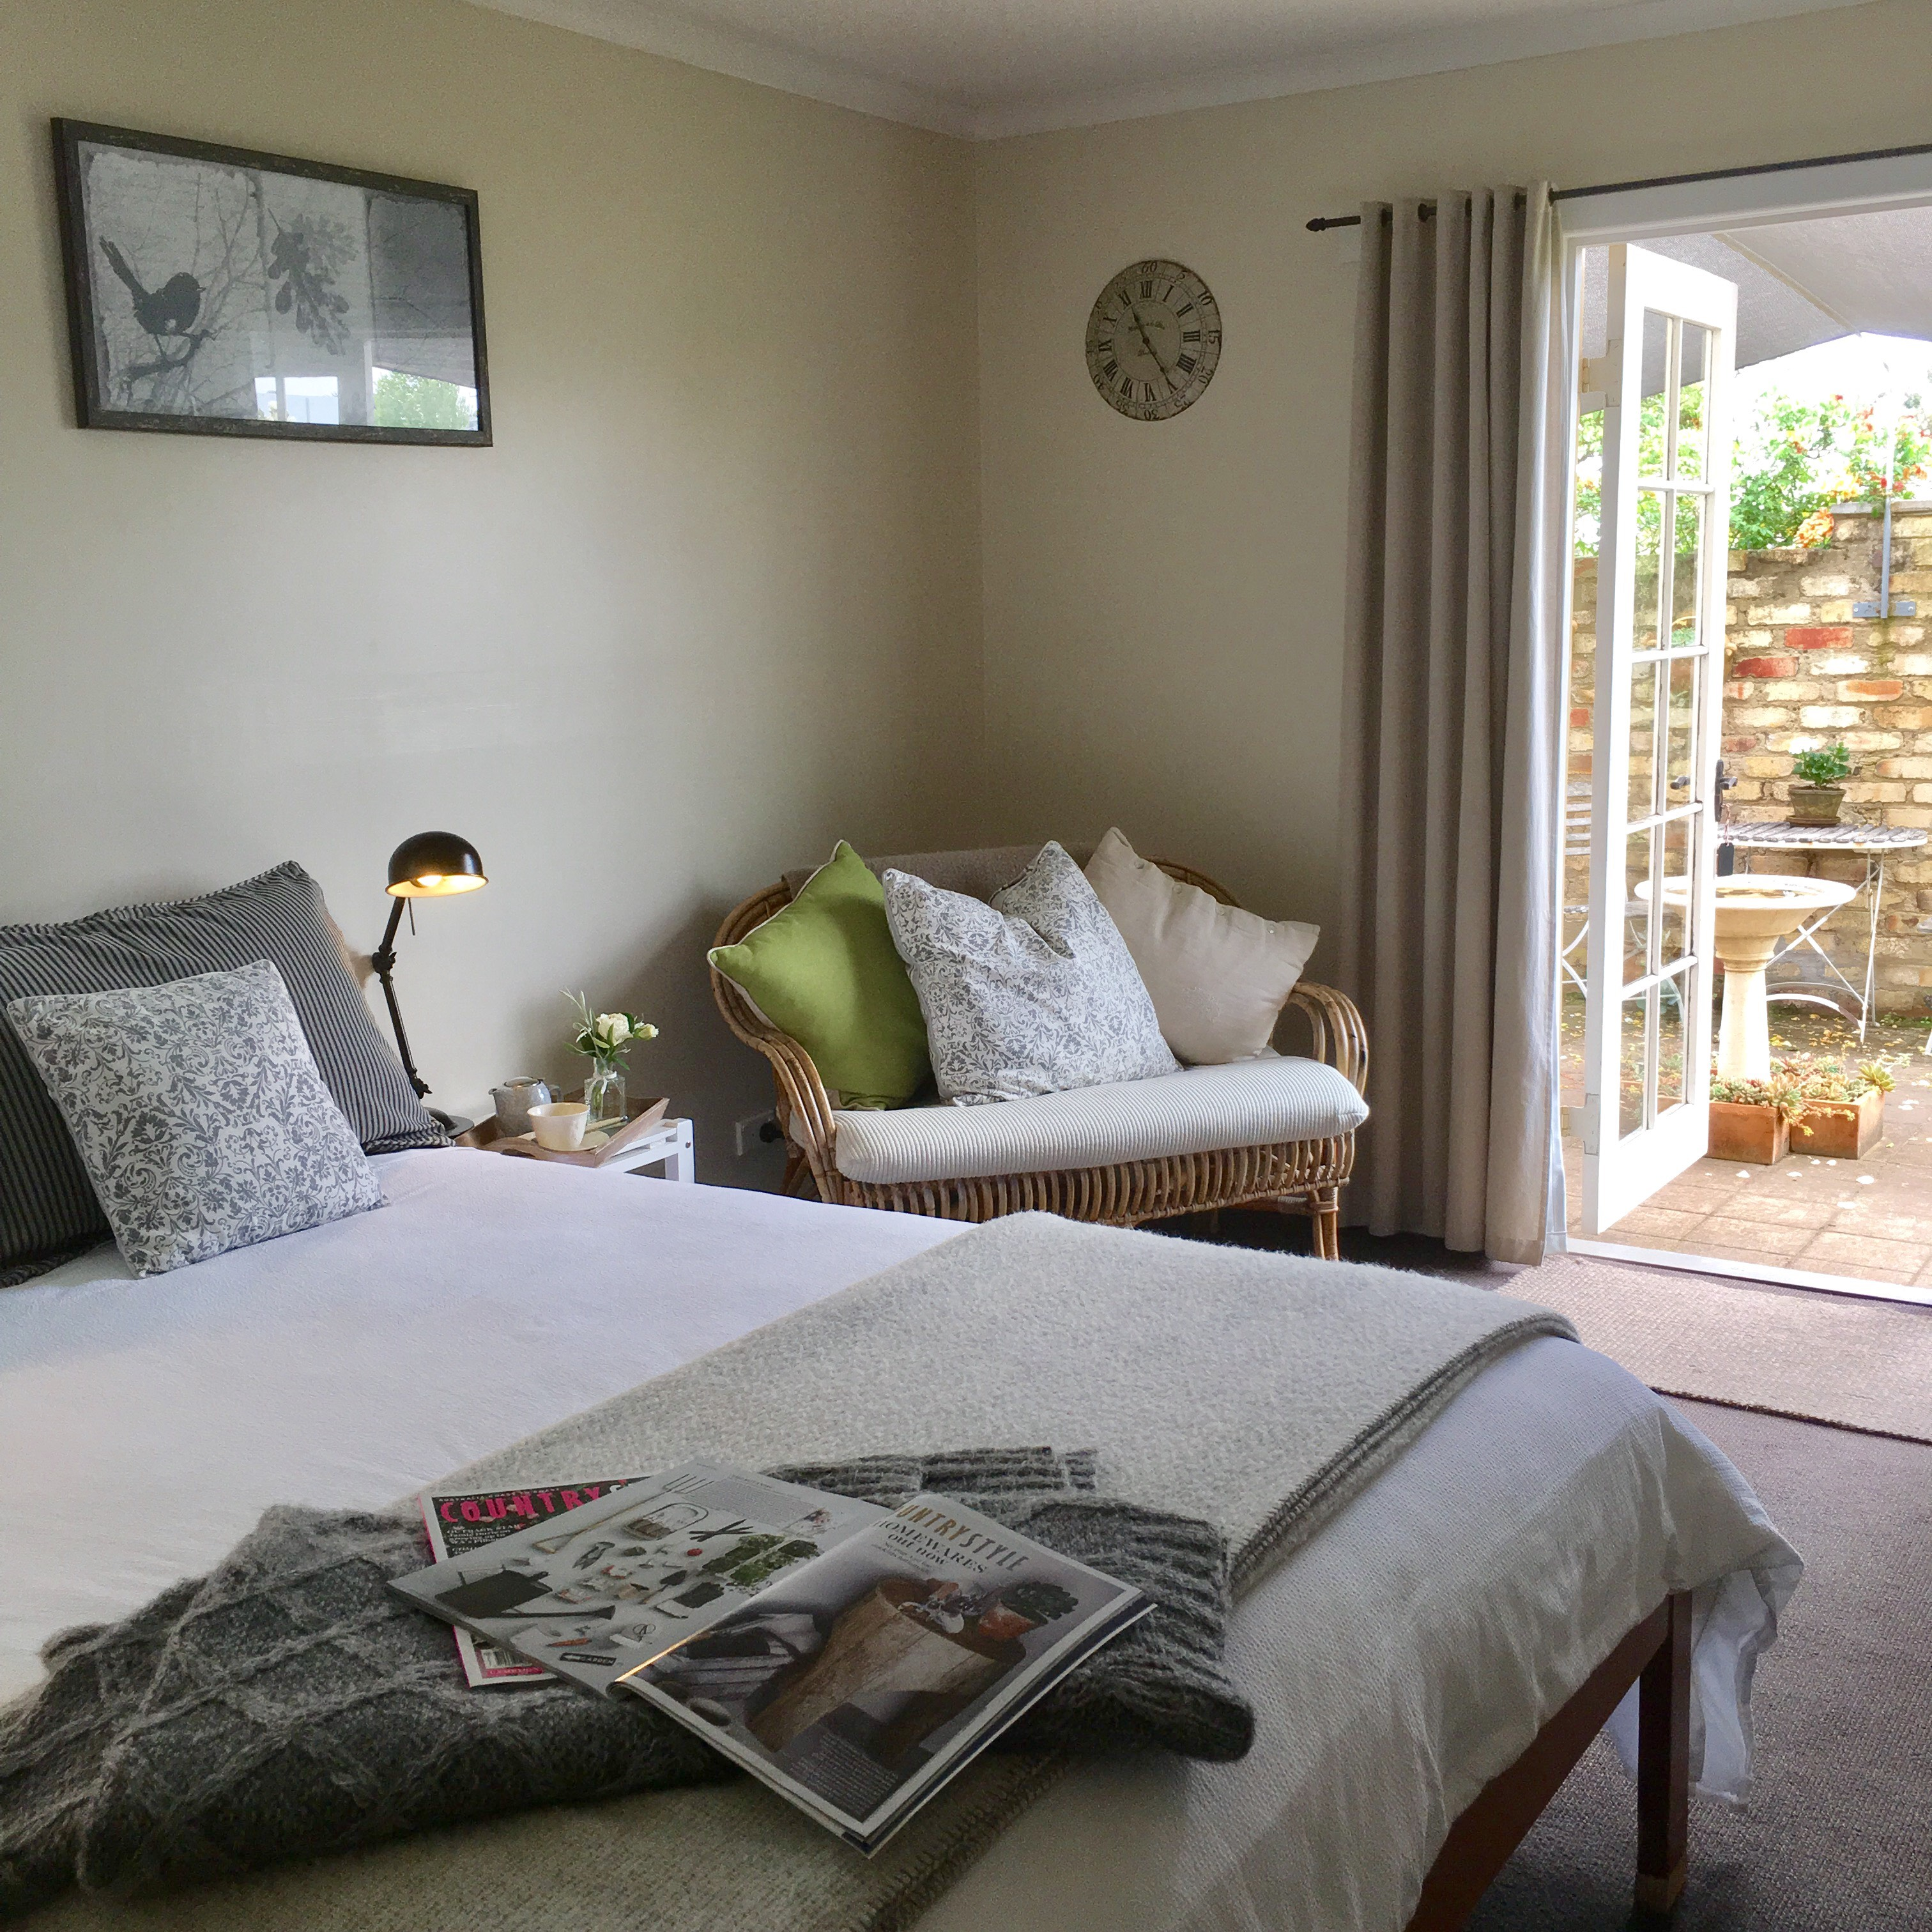 Aggies Bed and Breakfast - Nambucca Heads Accommodation